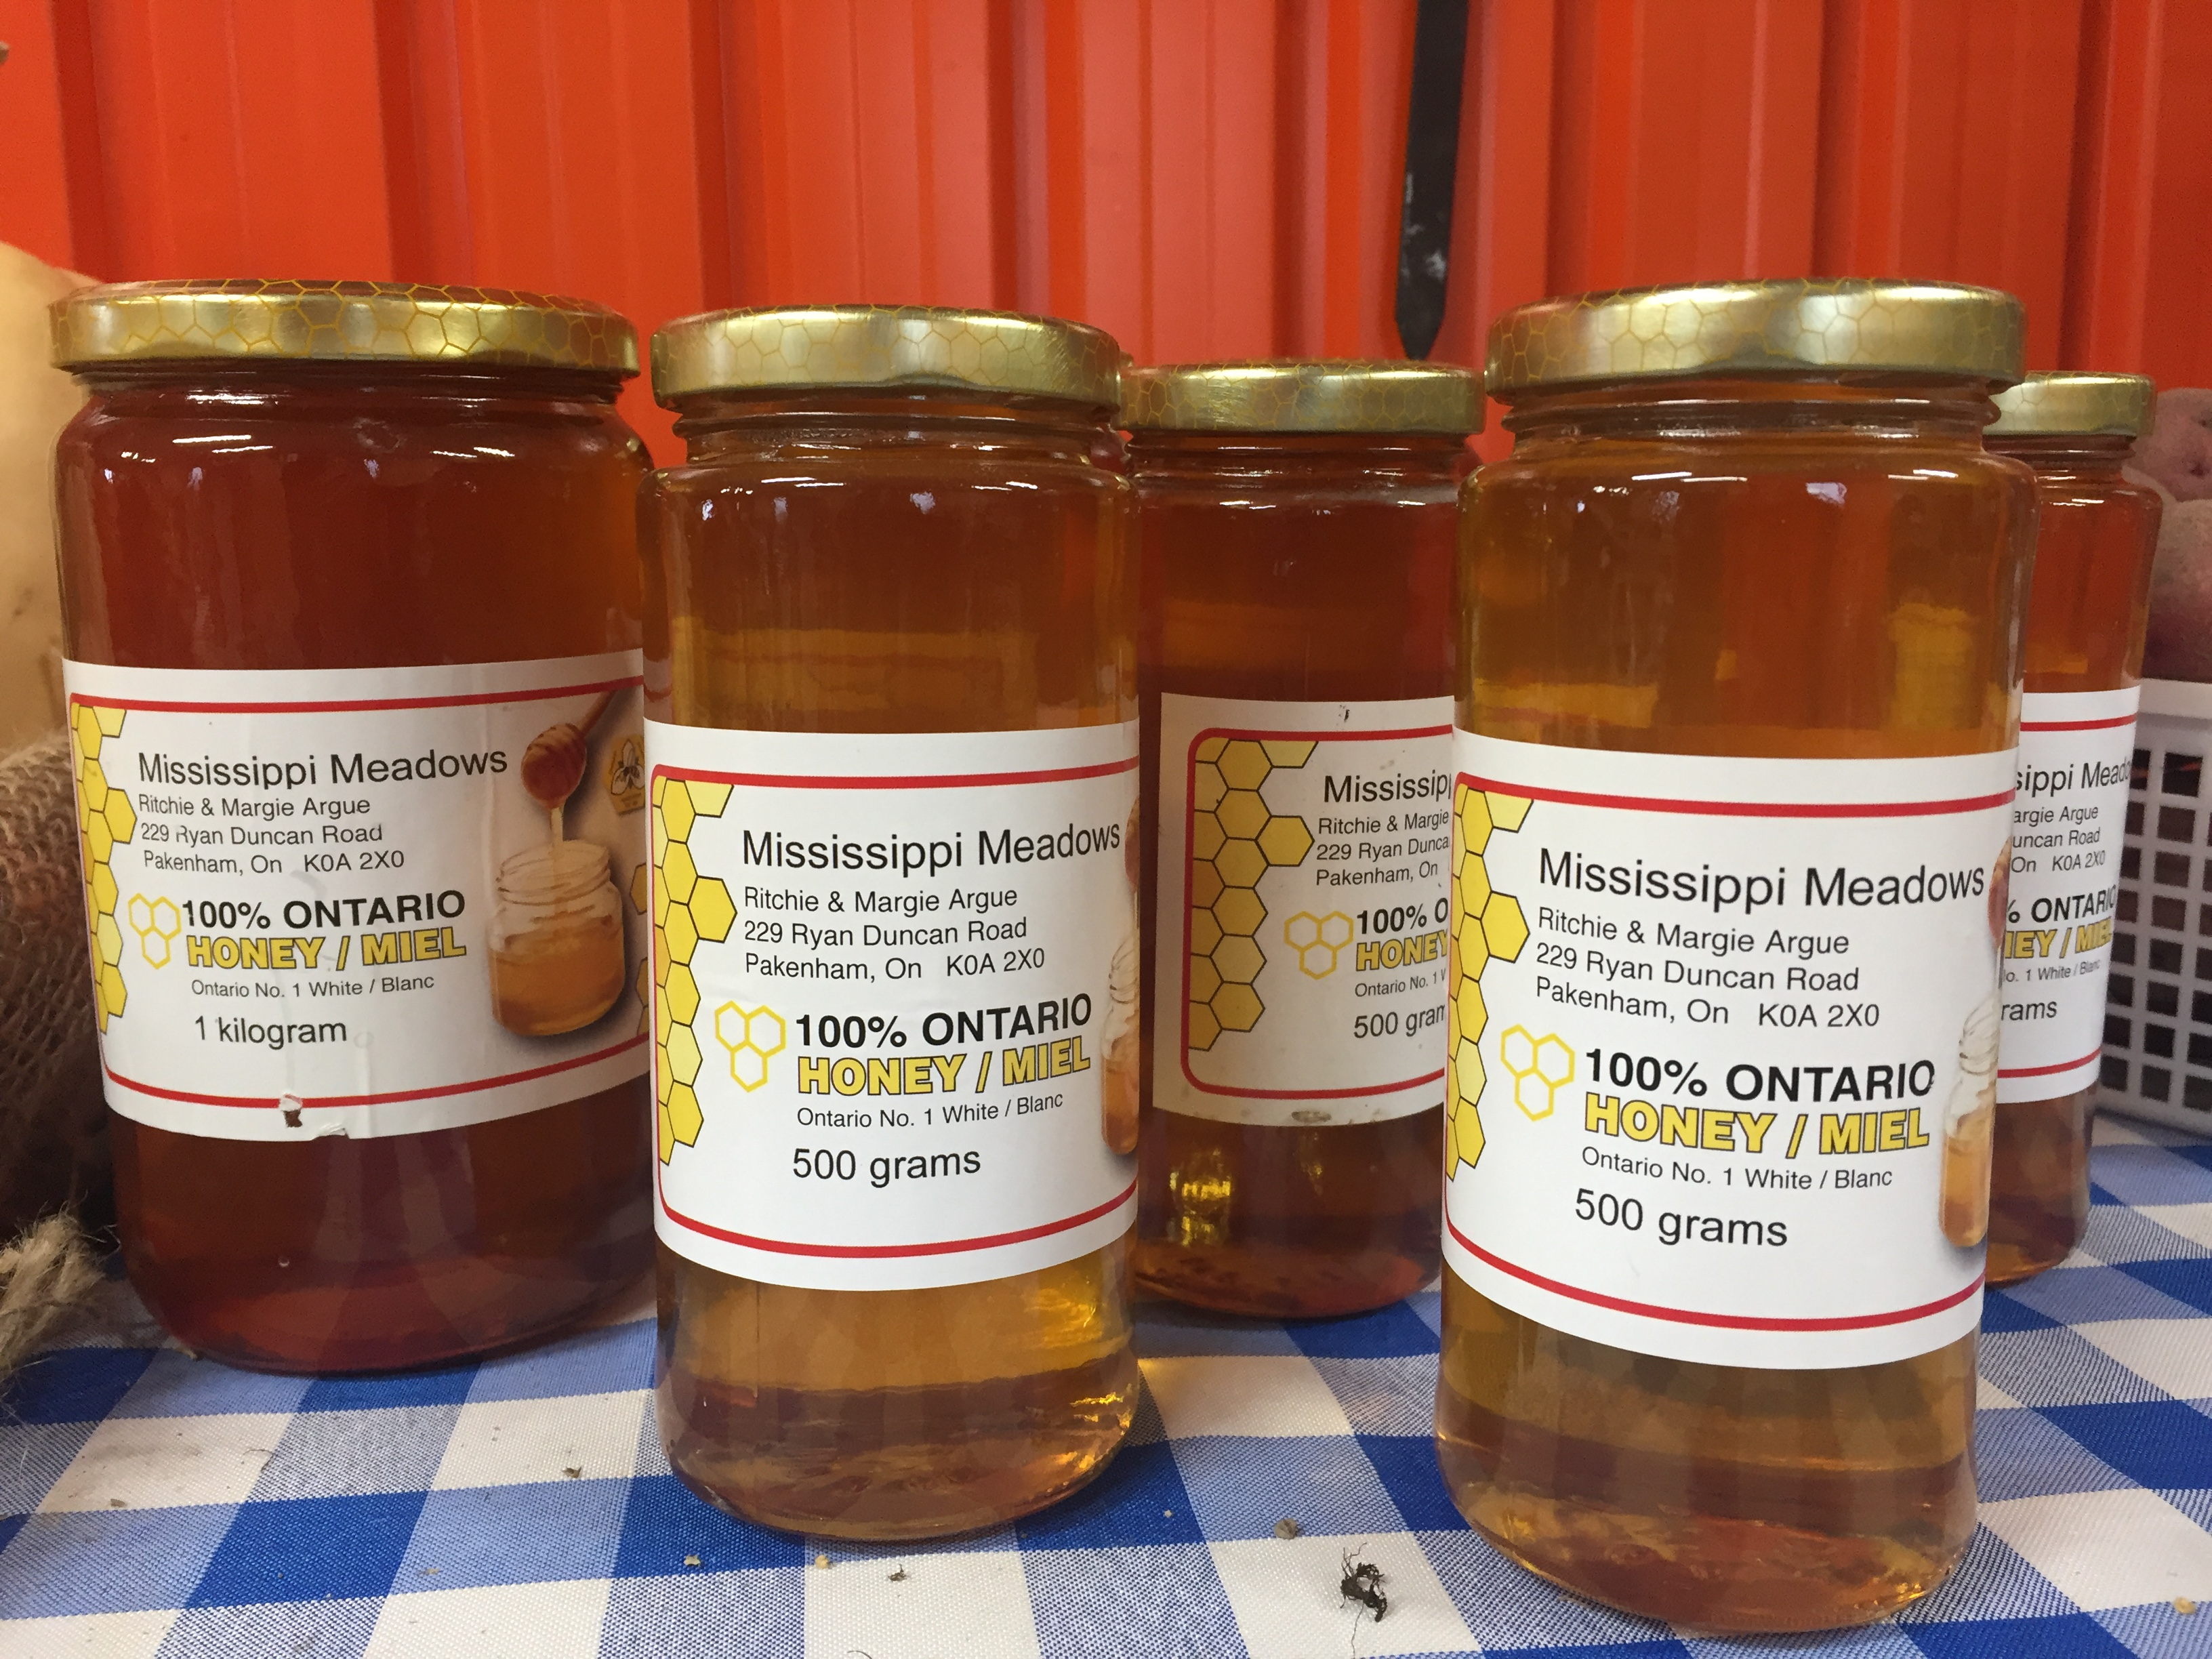 Mississippi Meadows Honey